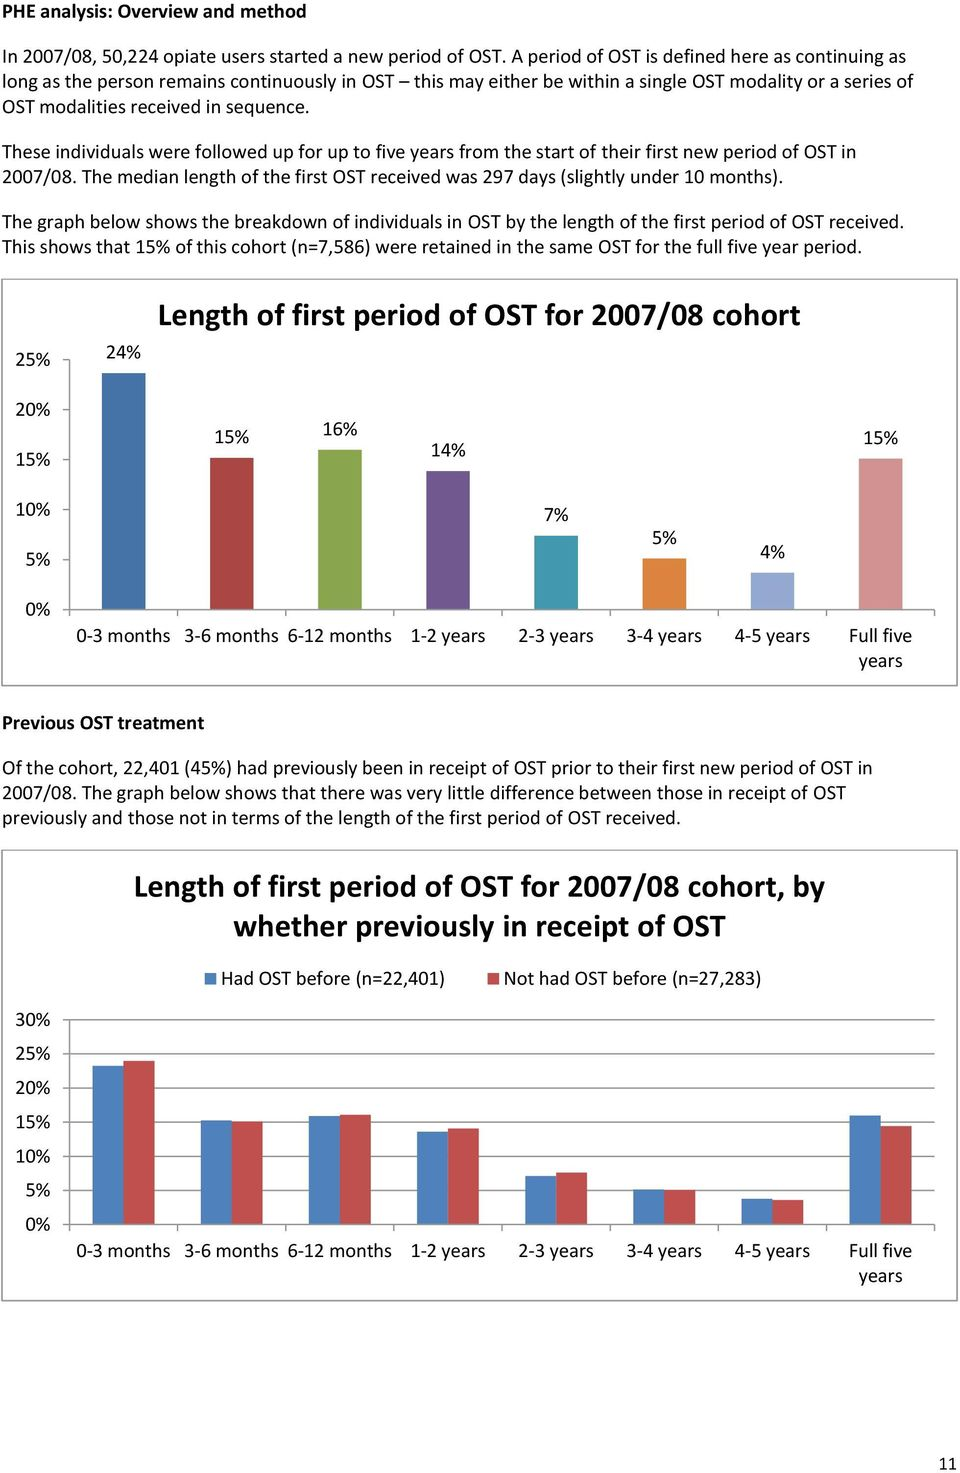 These individuals were followed up for up to five years from the start of their first new period of OST in 2007/08. The median length of the first OST received was 297 days (slightly under 10 months).